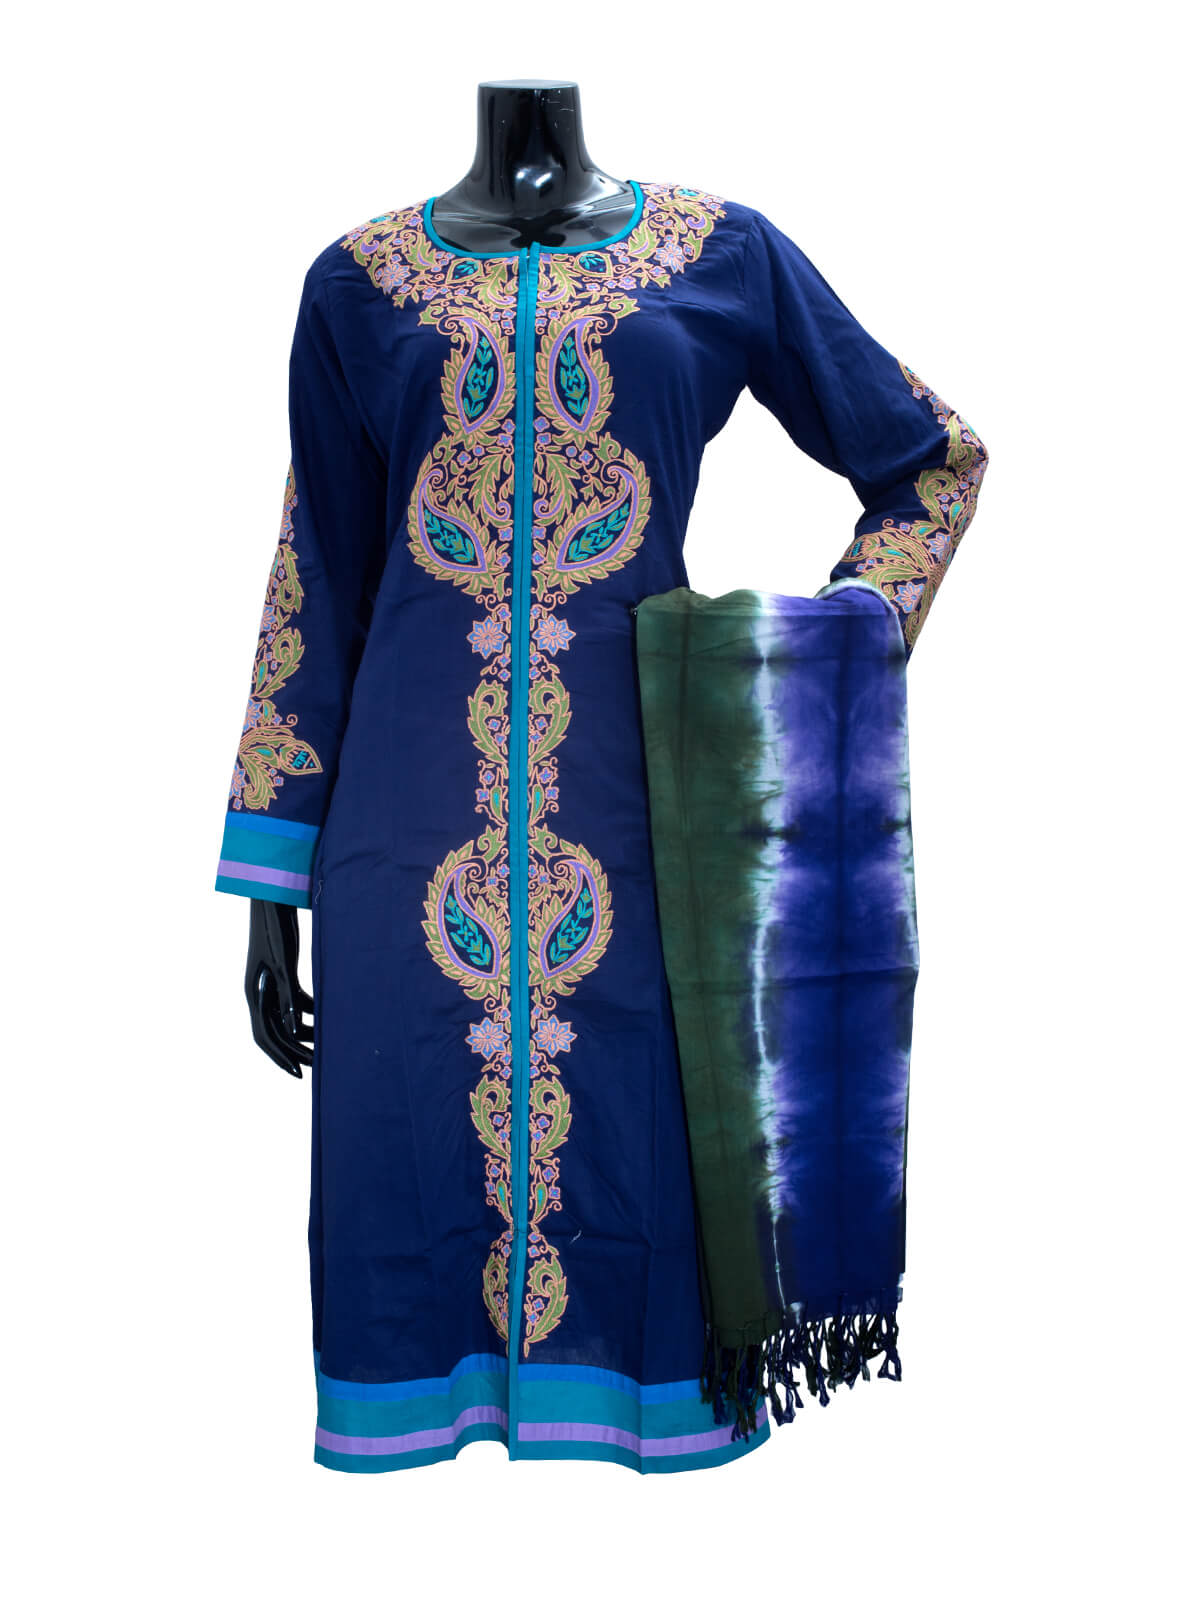 Hand Embroidered & Wax Dyed Stitched Salwar, Kameez Set For Women